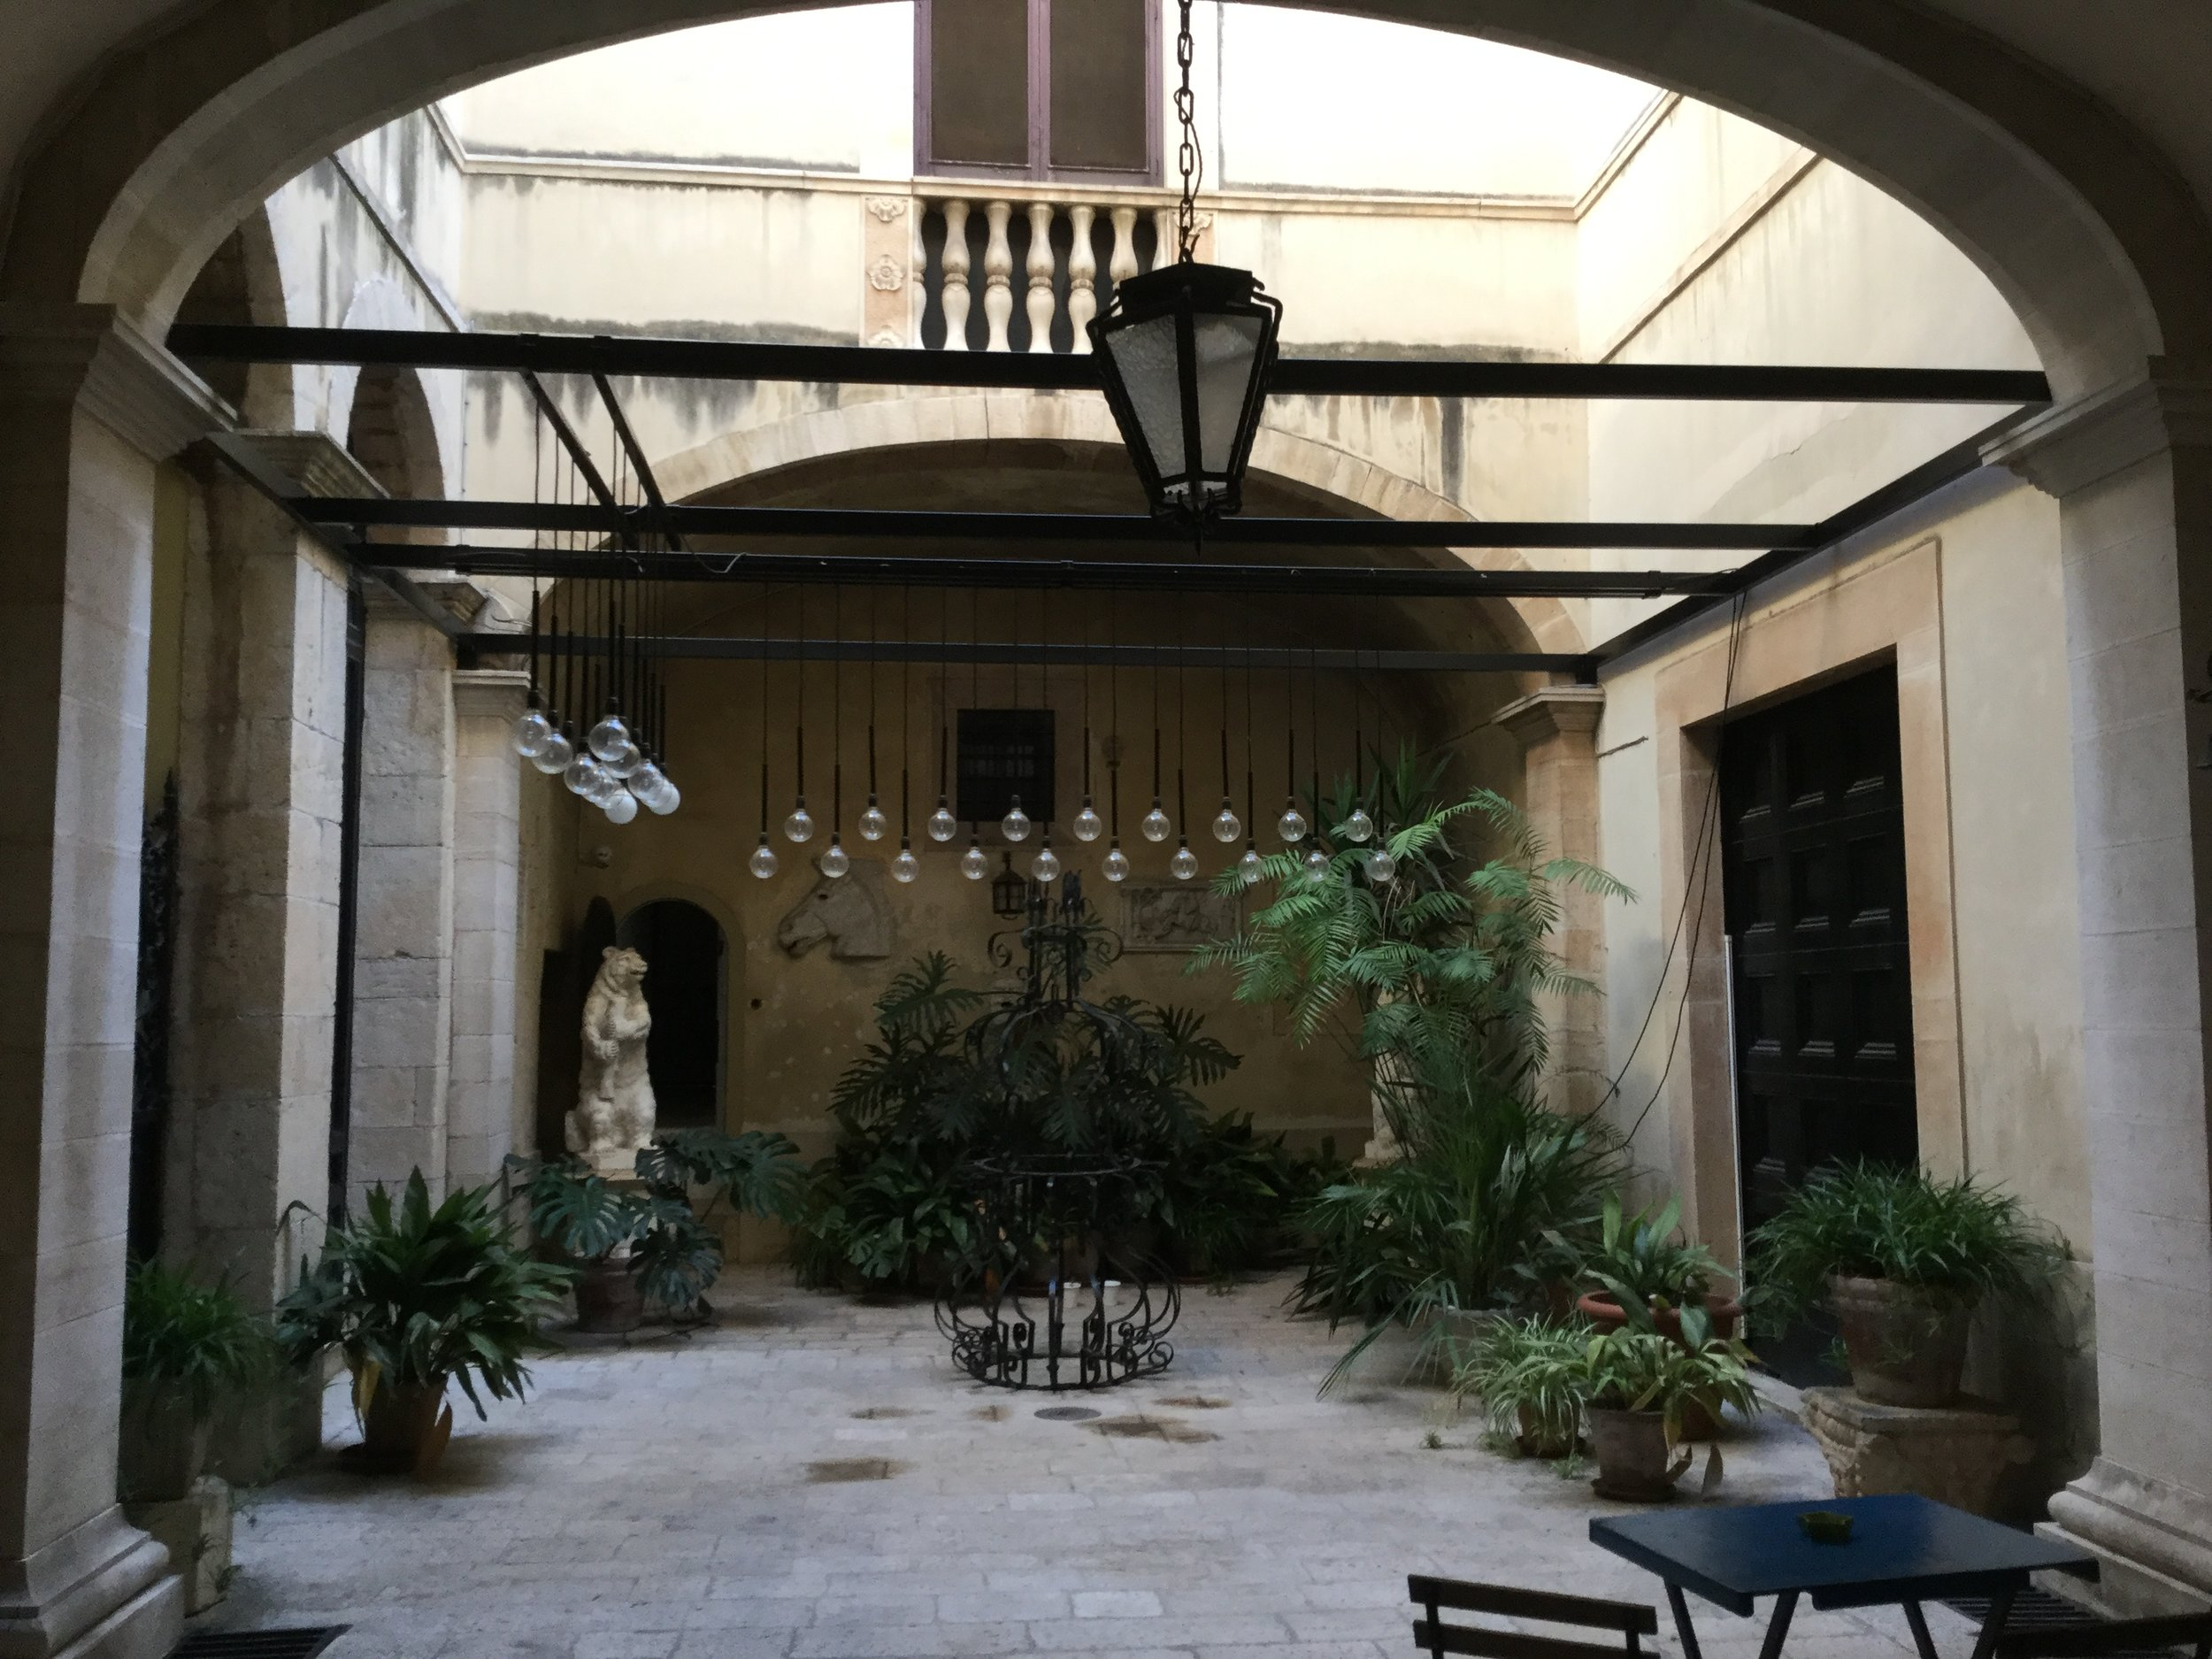 The courtyard at our building.